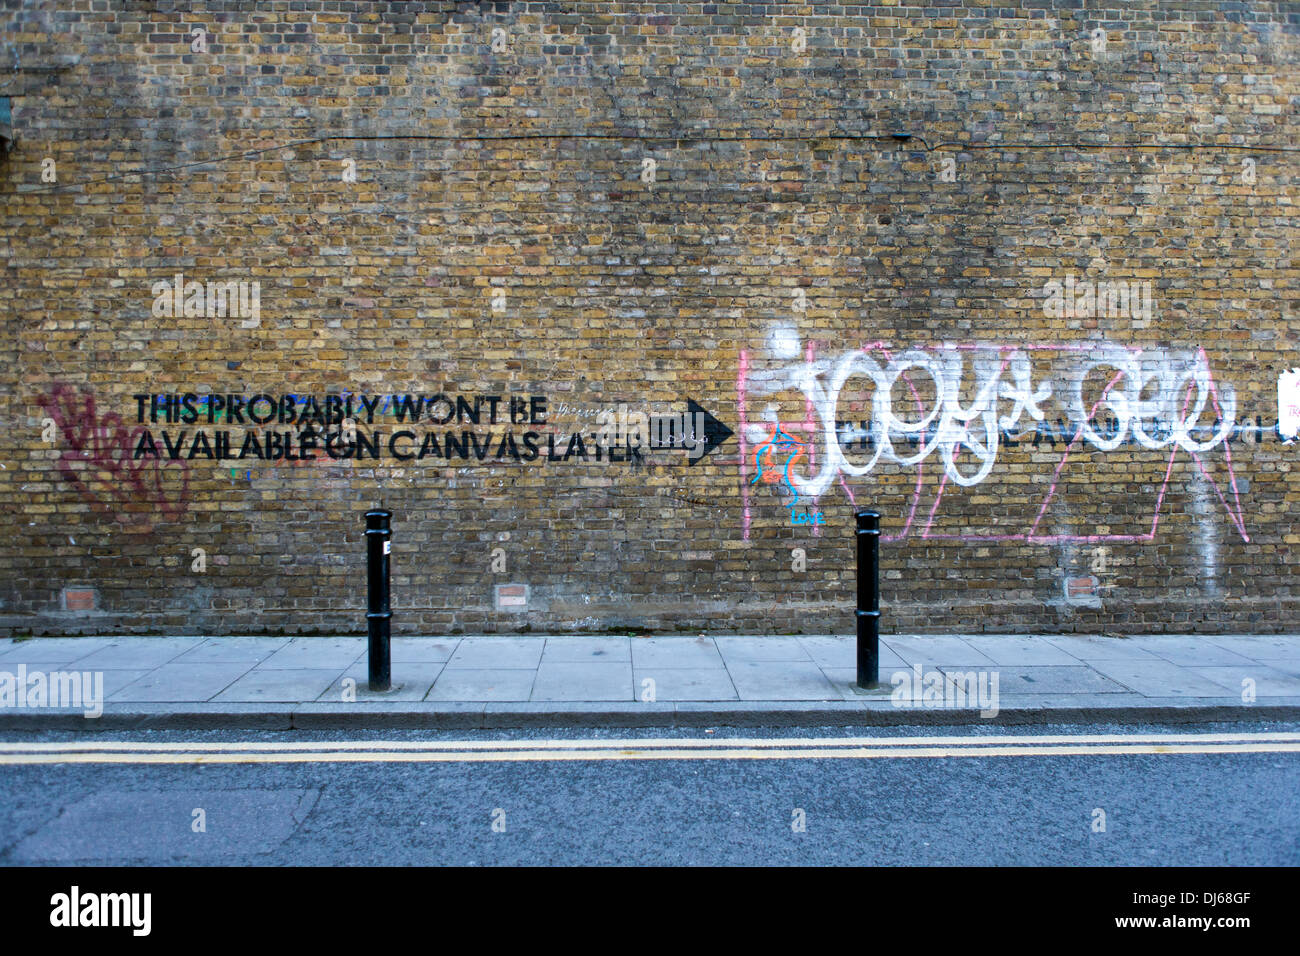 'This Probably Won't Be Available on Canvas Later' stencil graffiti, Hanbury Street, Tower Hamlets, London E1, UK. - Stock Image